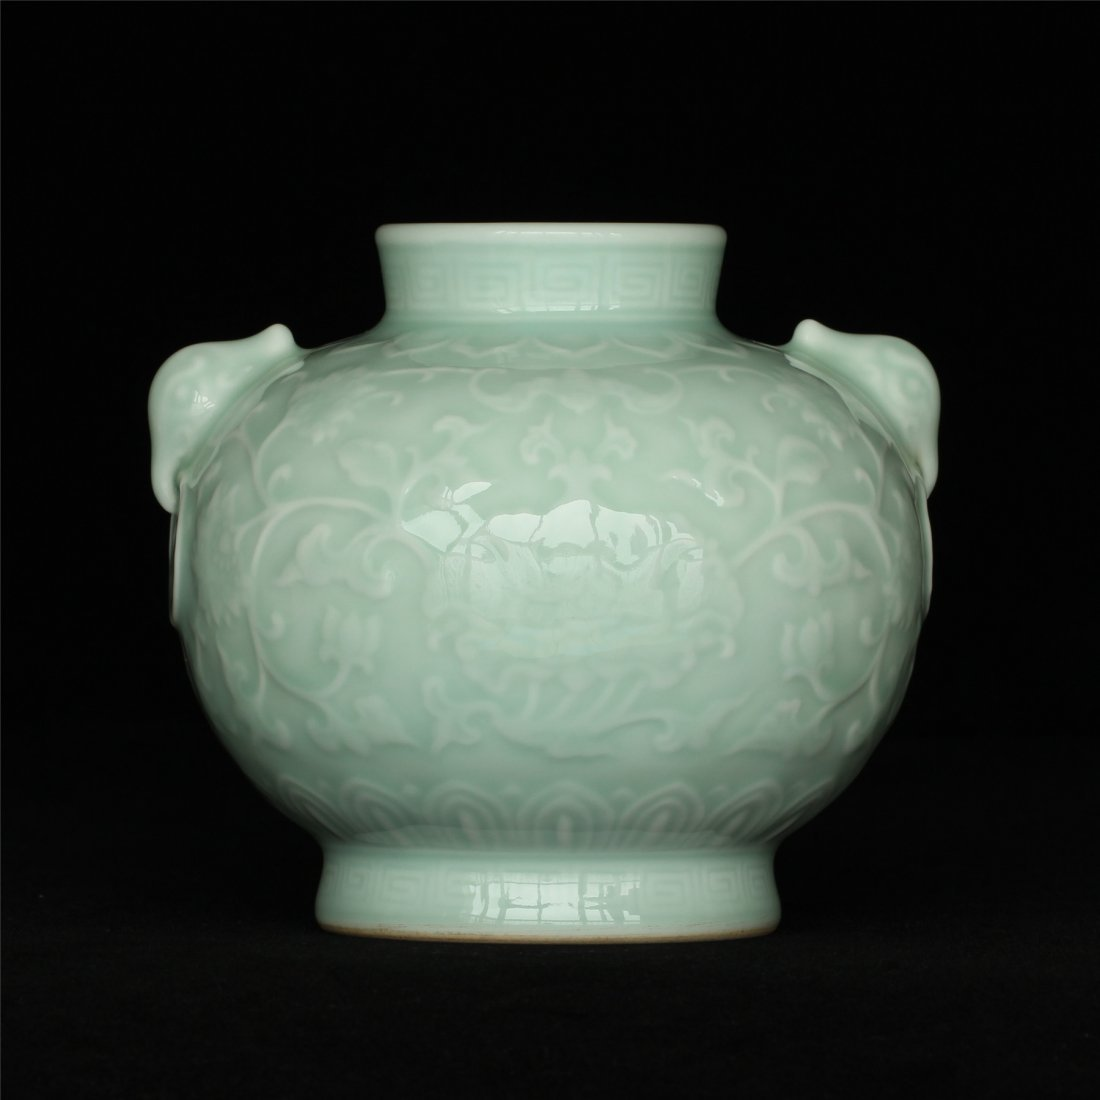 Blue glaze carving porcelain jar of Qing Dynasty